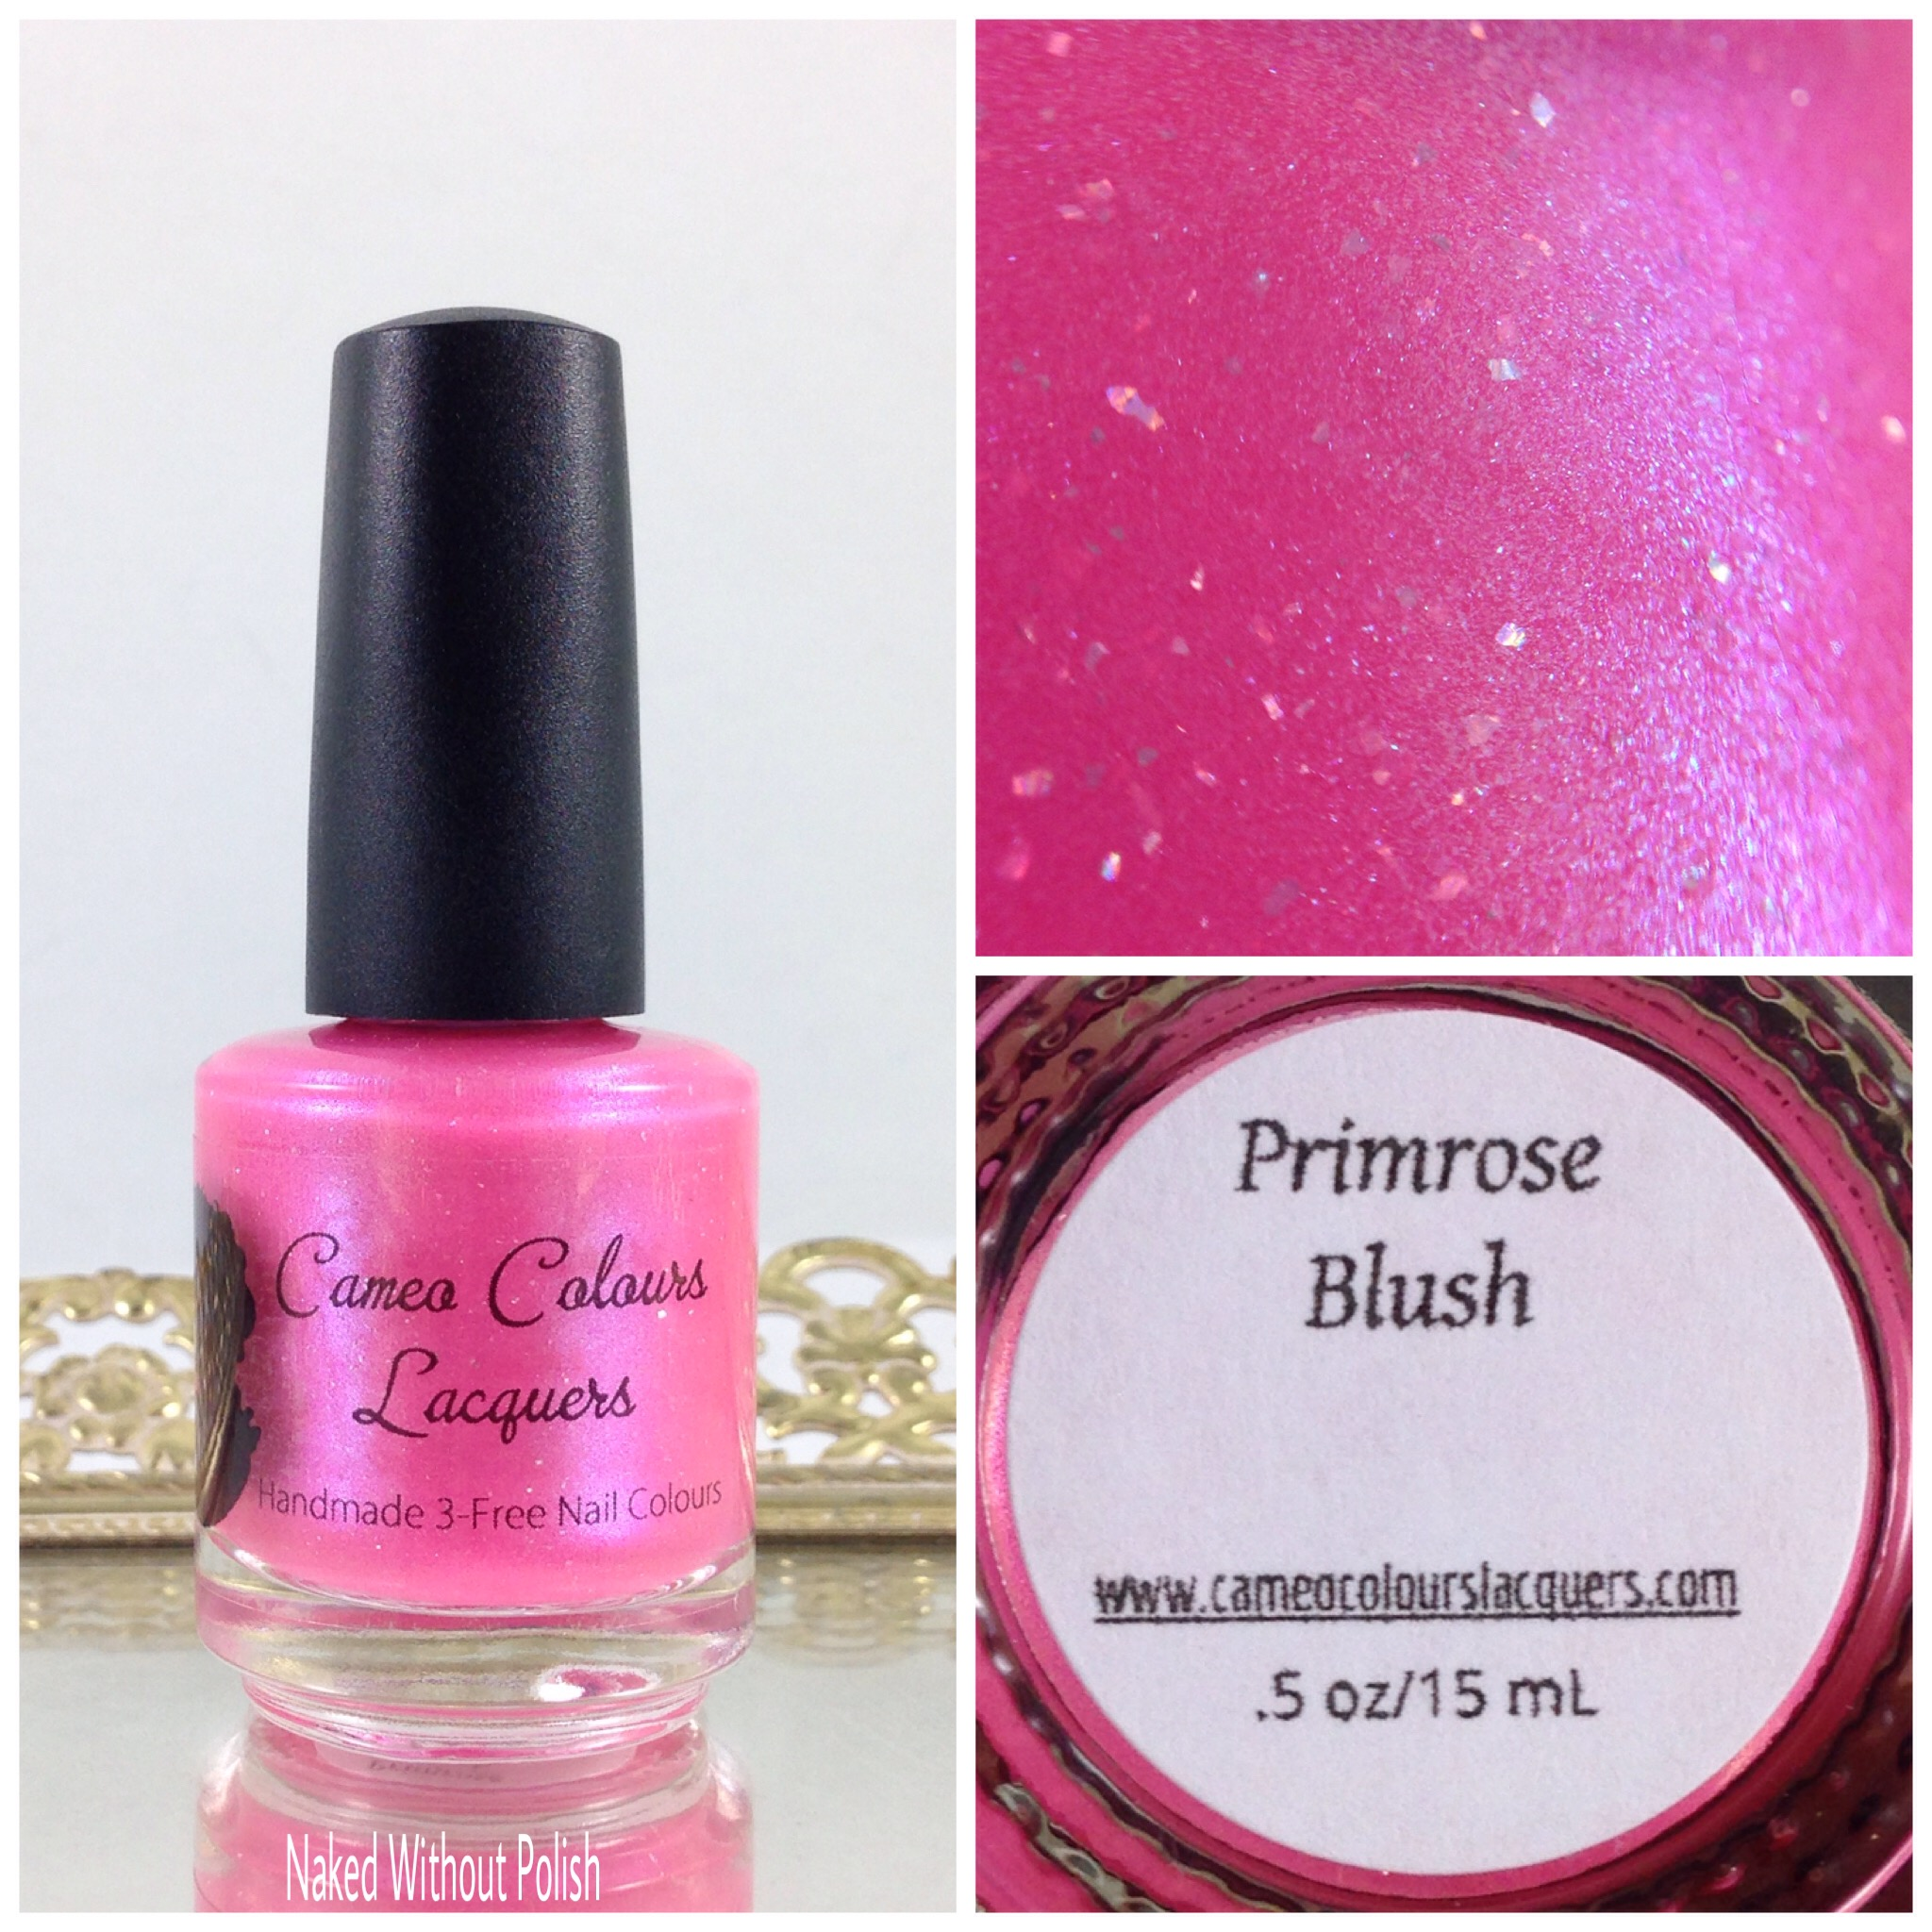 Cameo-Colours-Lacquers-Primrose-Blush-1